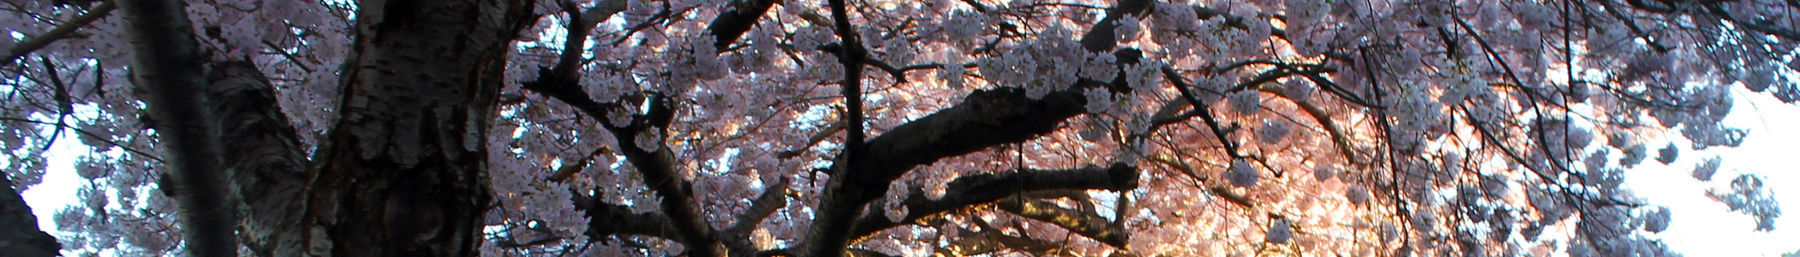 Wikivoyage page banner tree blossom 3.jpg